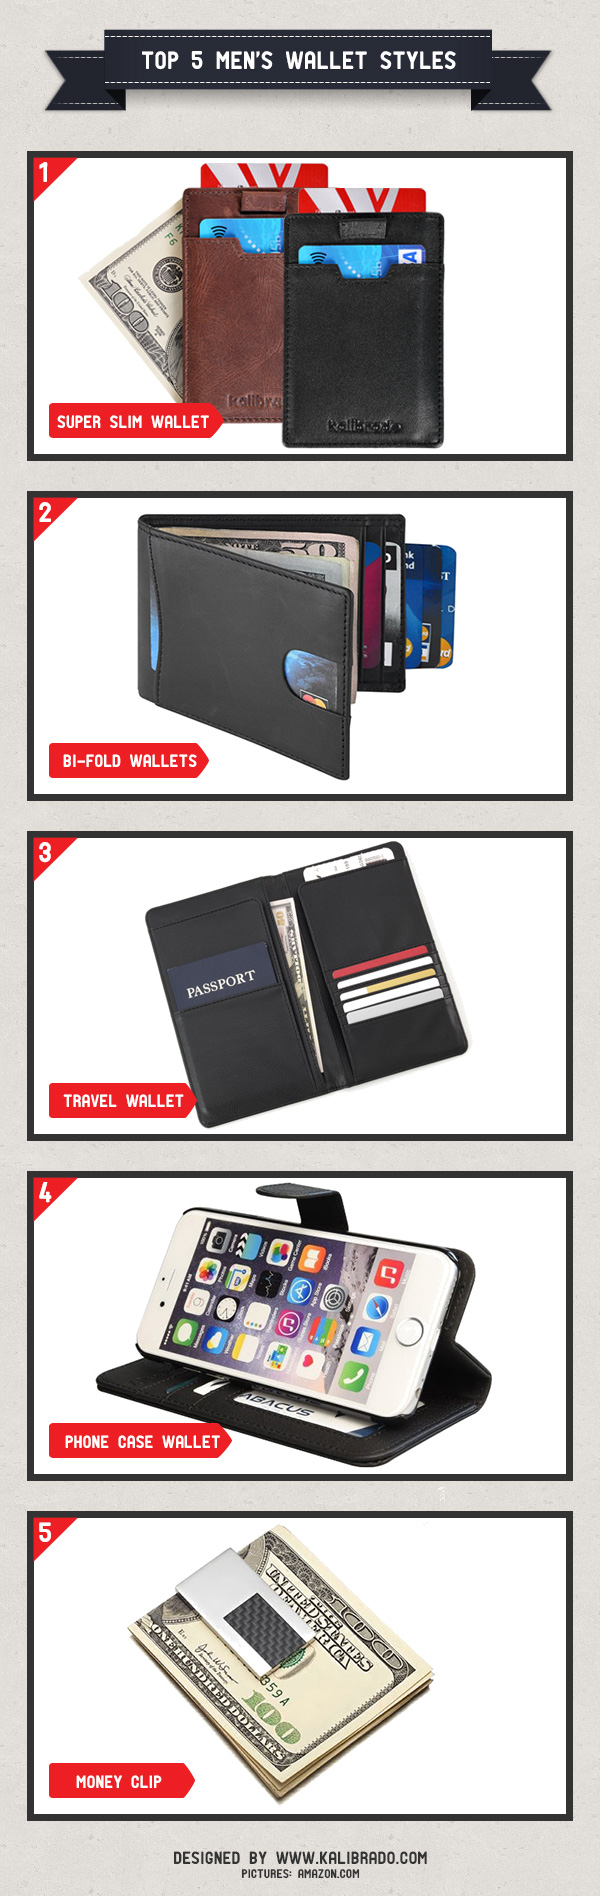 top-5-mens-wallet-styles